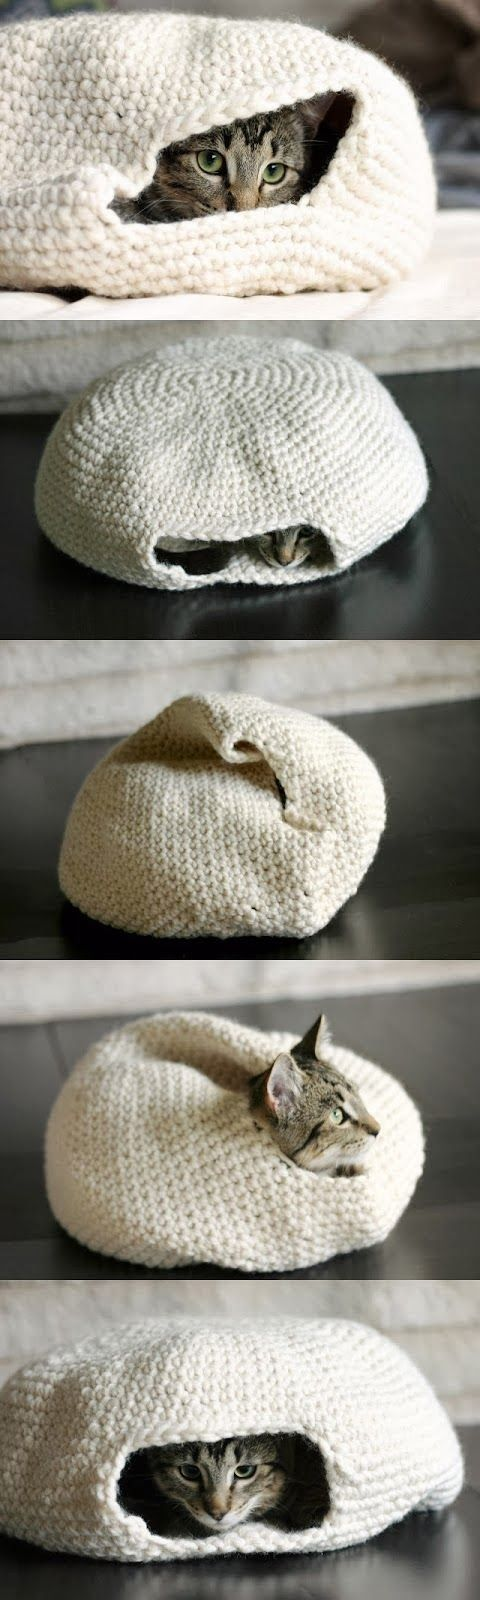 How to Make a Handmade Crochet Cat Bed. Very Cheap and Easy to Make!!